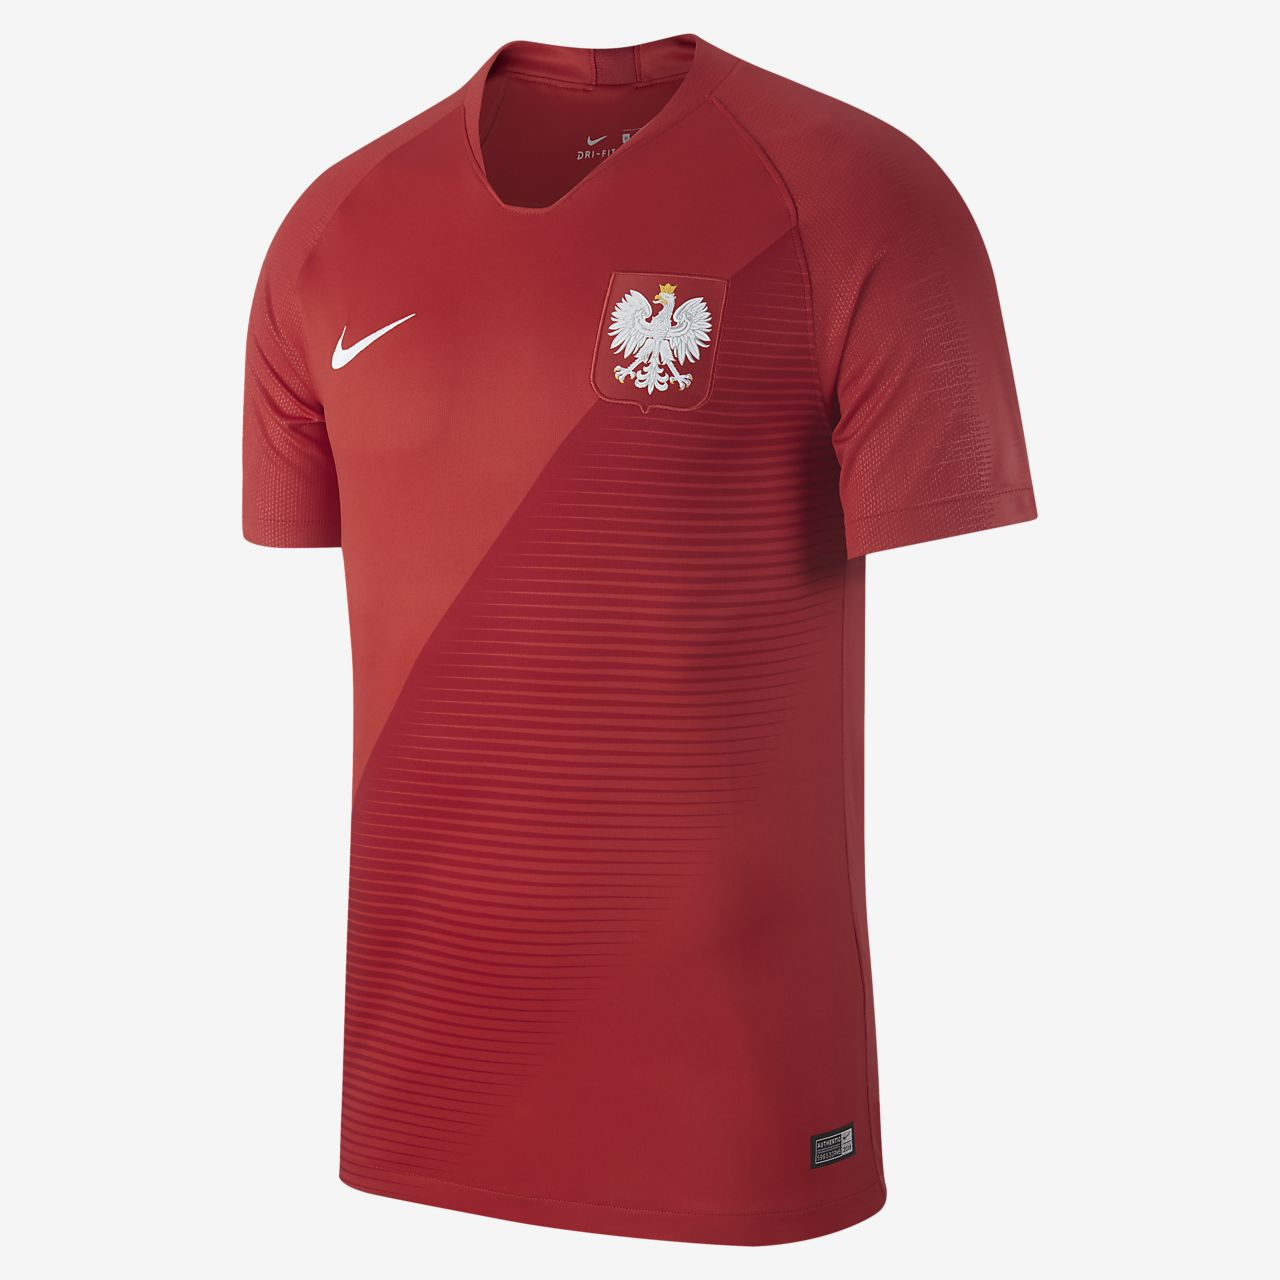 2018 Poland Stadium Away Men's Football Shirt